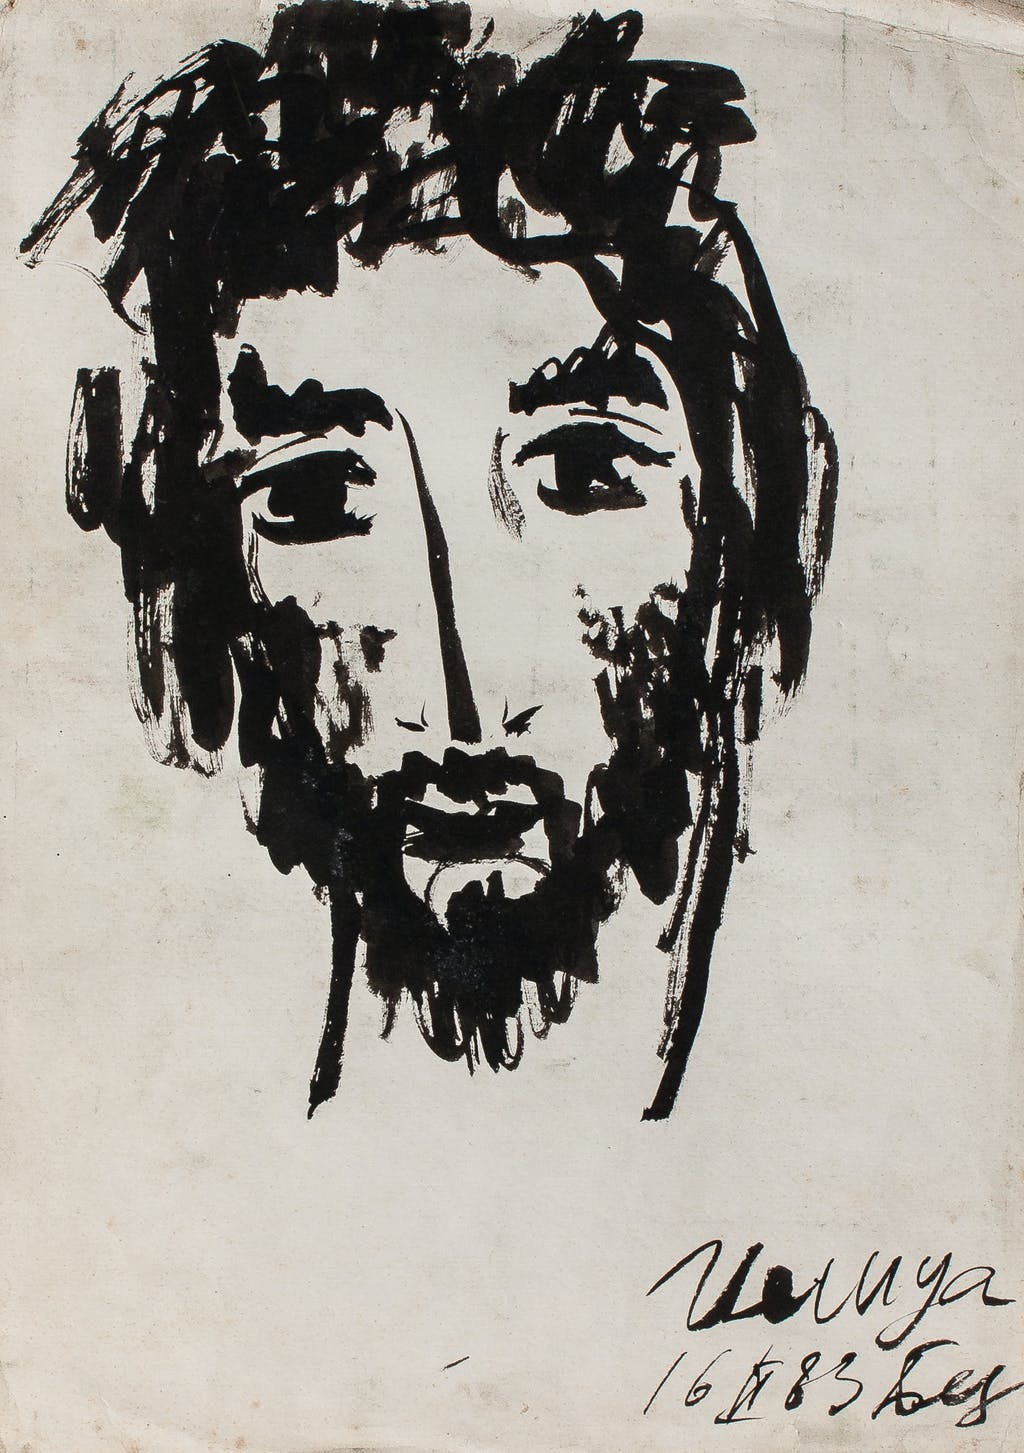 """Painting """"Yeshua (from """"The Master and Margarita"""")"""", painted by Elena Birkenwald in 1983"""